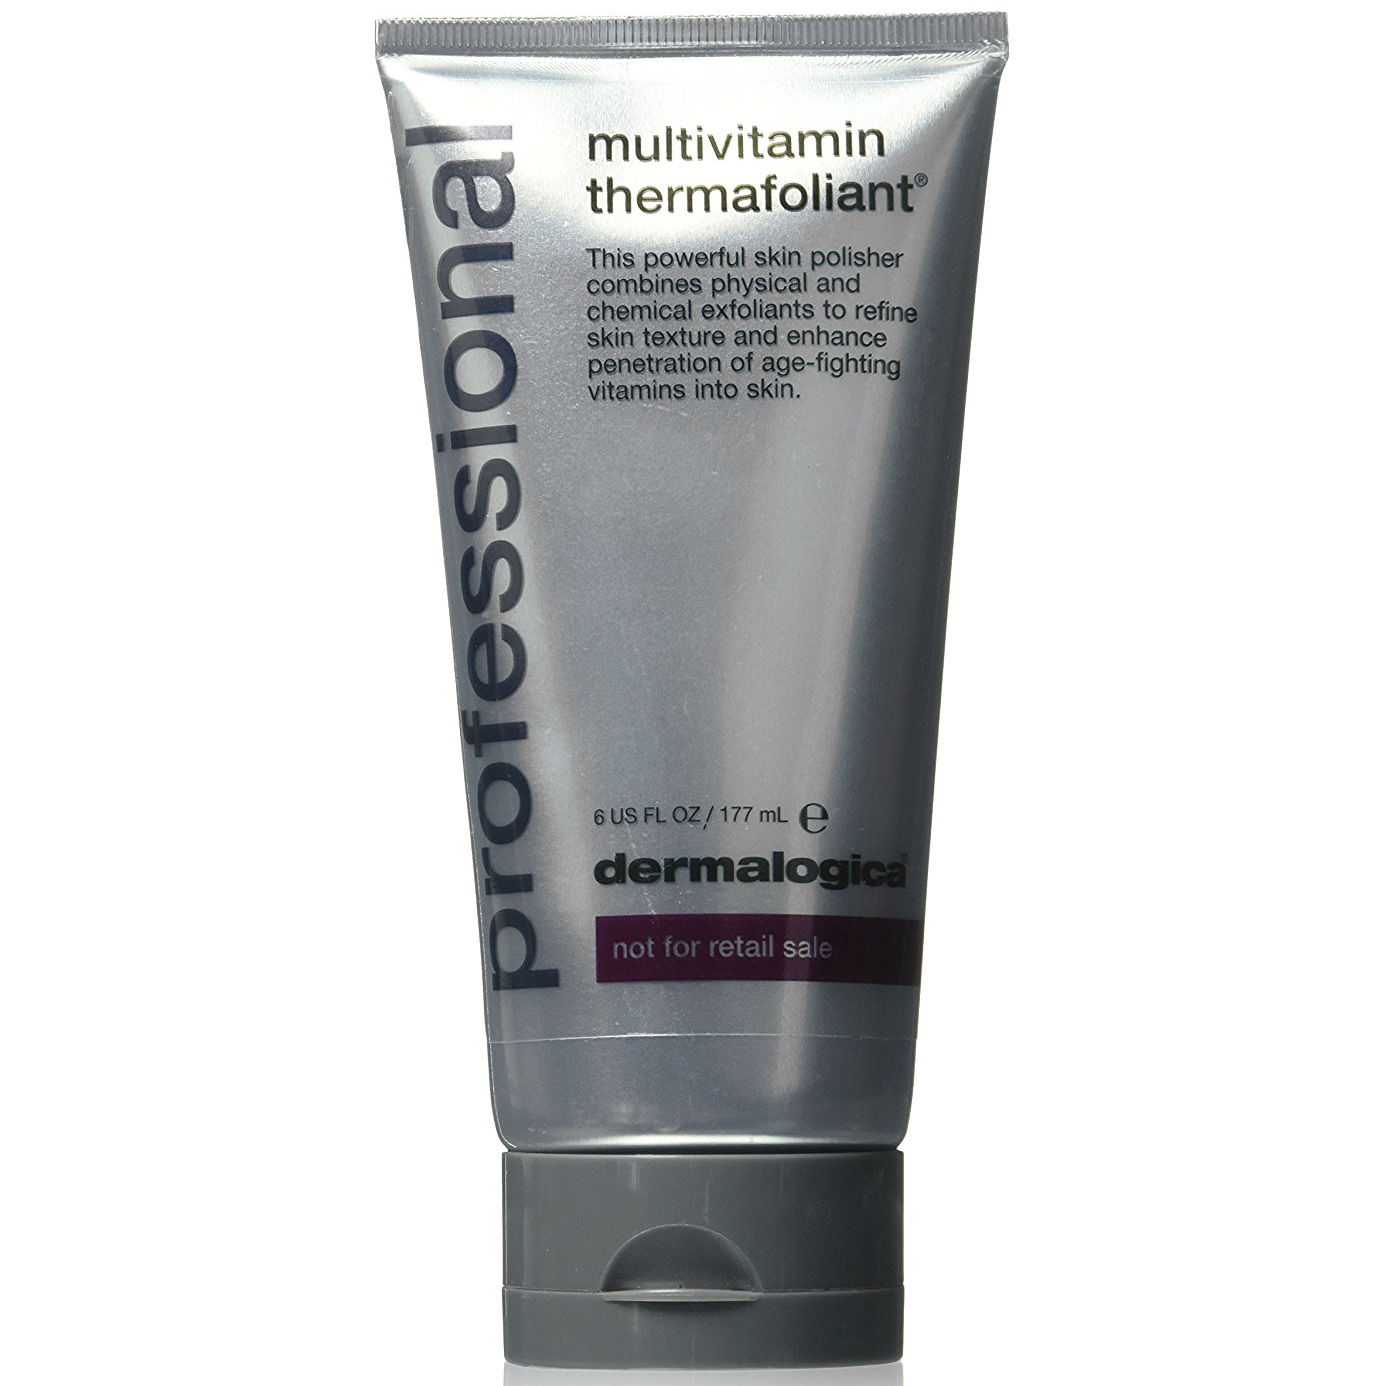 Dermalogica Age Smart Multivitamin Thermafoliant 177ml / 6oz